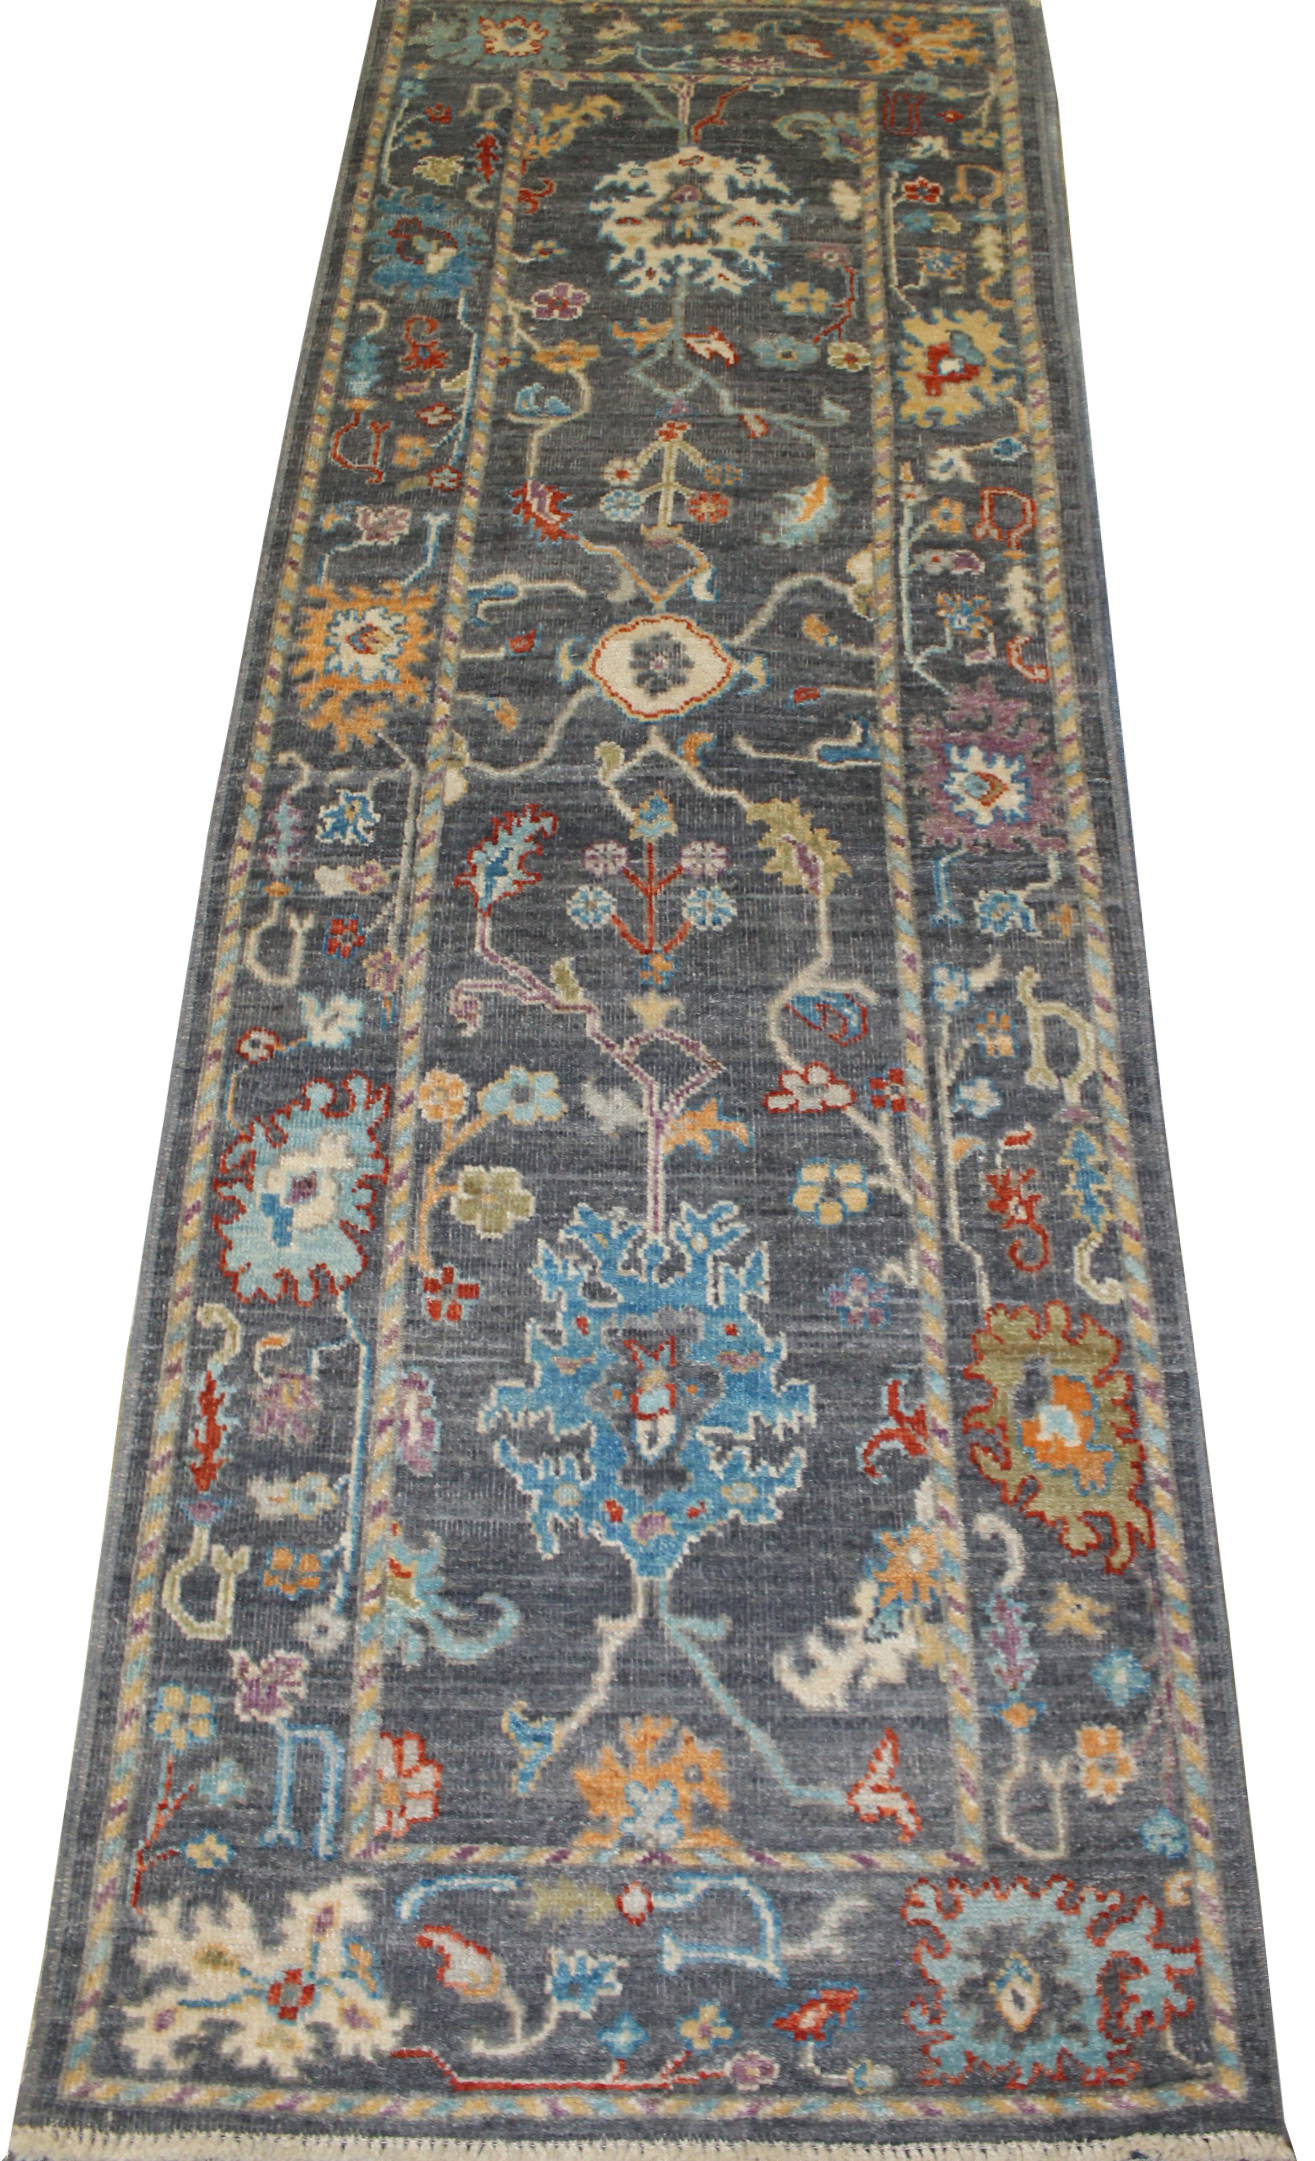 8 ft. Runner Oushak Hand Knotted Wool Area Rug - MR023707